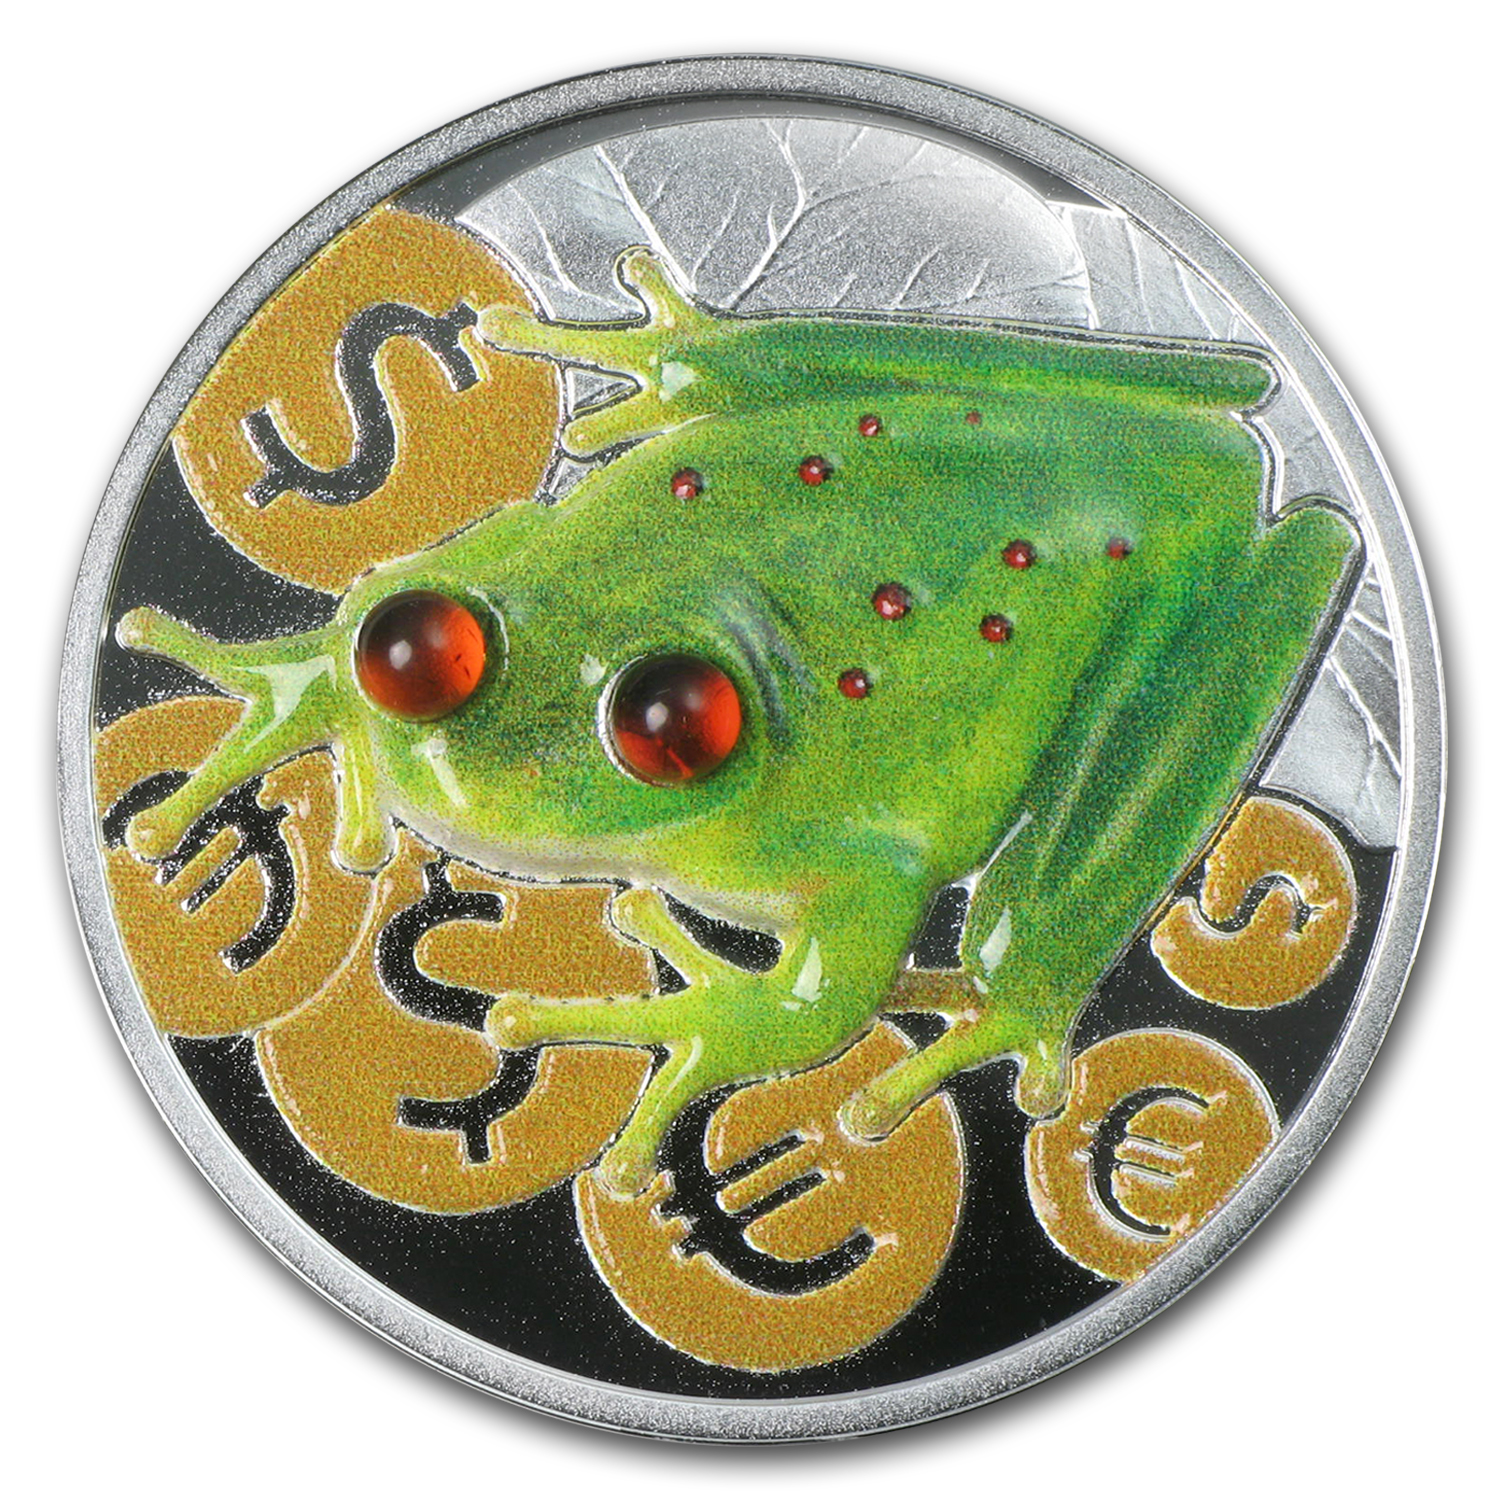 2015 Niue 1 oz Silver Money Frog Proof